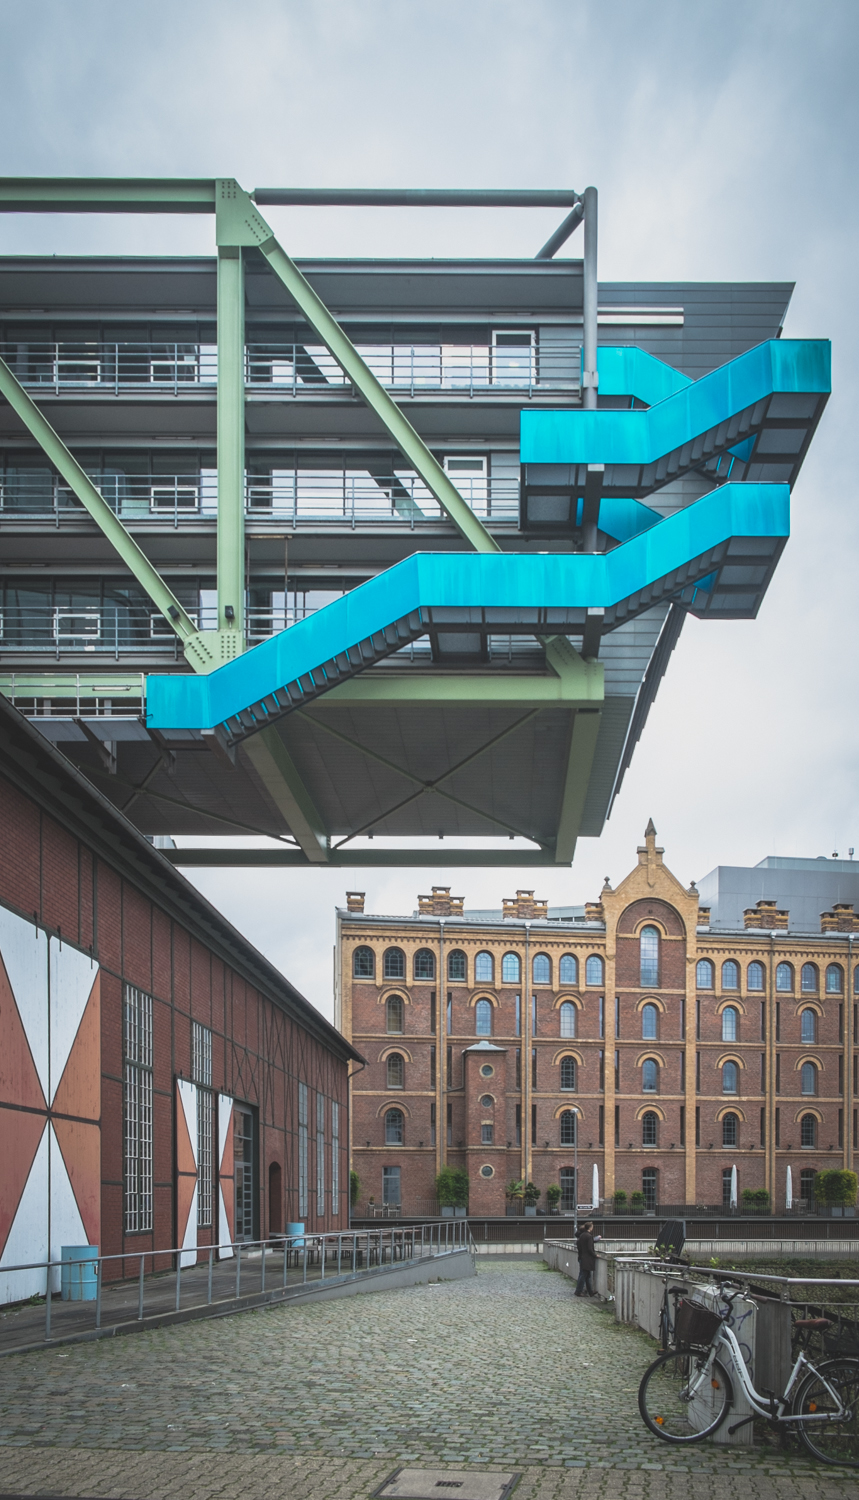 Inspiration of Zaha's Port House? Or inspired by?